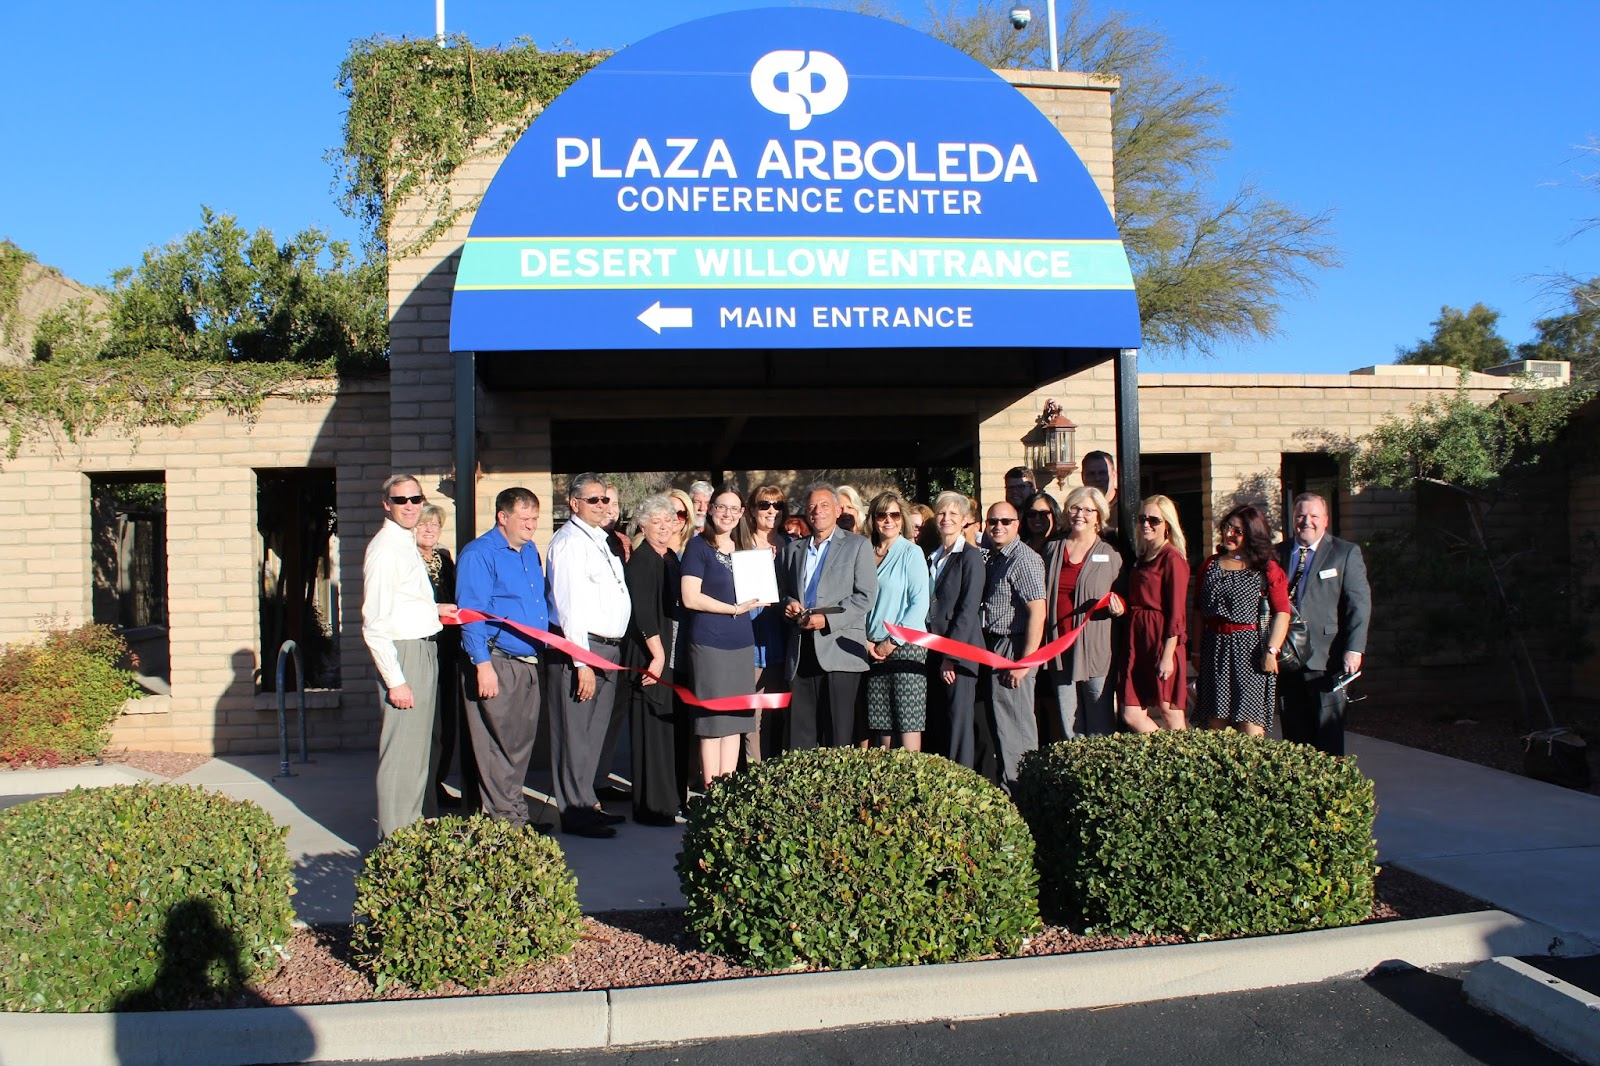 Plaza Arboleda Conference Center hosted a ribbon-cutting and grand opening to showcase its newly refurbished meeting and event space, which includes new audio/visual equipment.  Attendees also had the opportunity to sample some of our delicious and affordable, in-house catering.